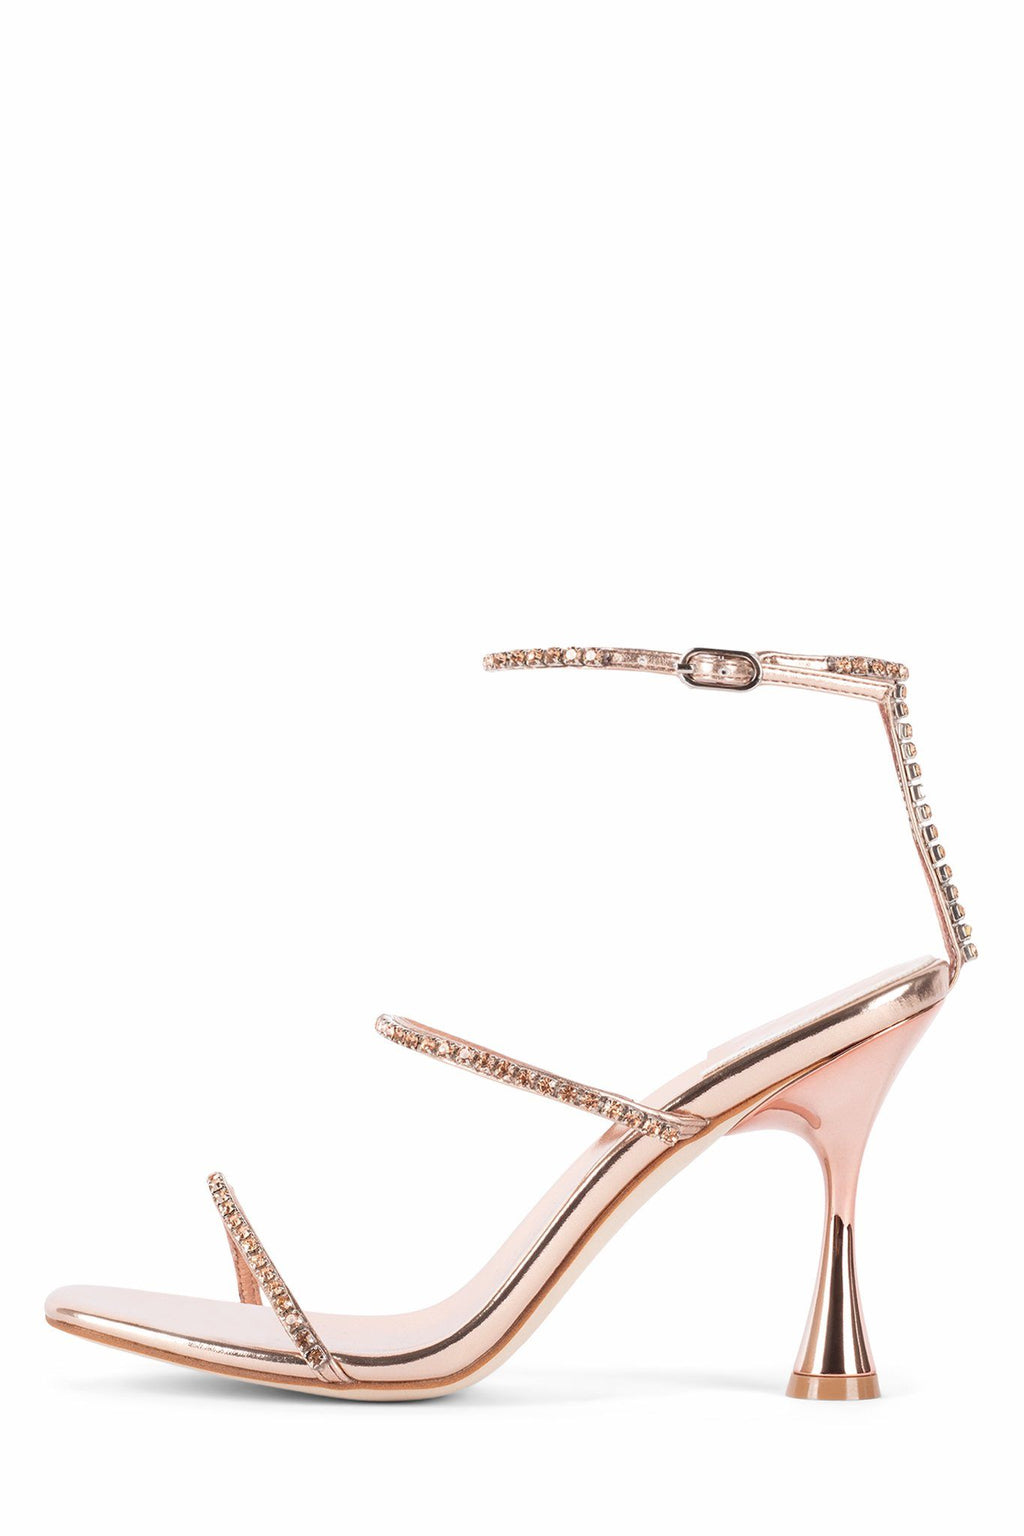 DEMONICA Heeled Sandal ST Rose Gold Combo 6